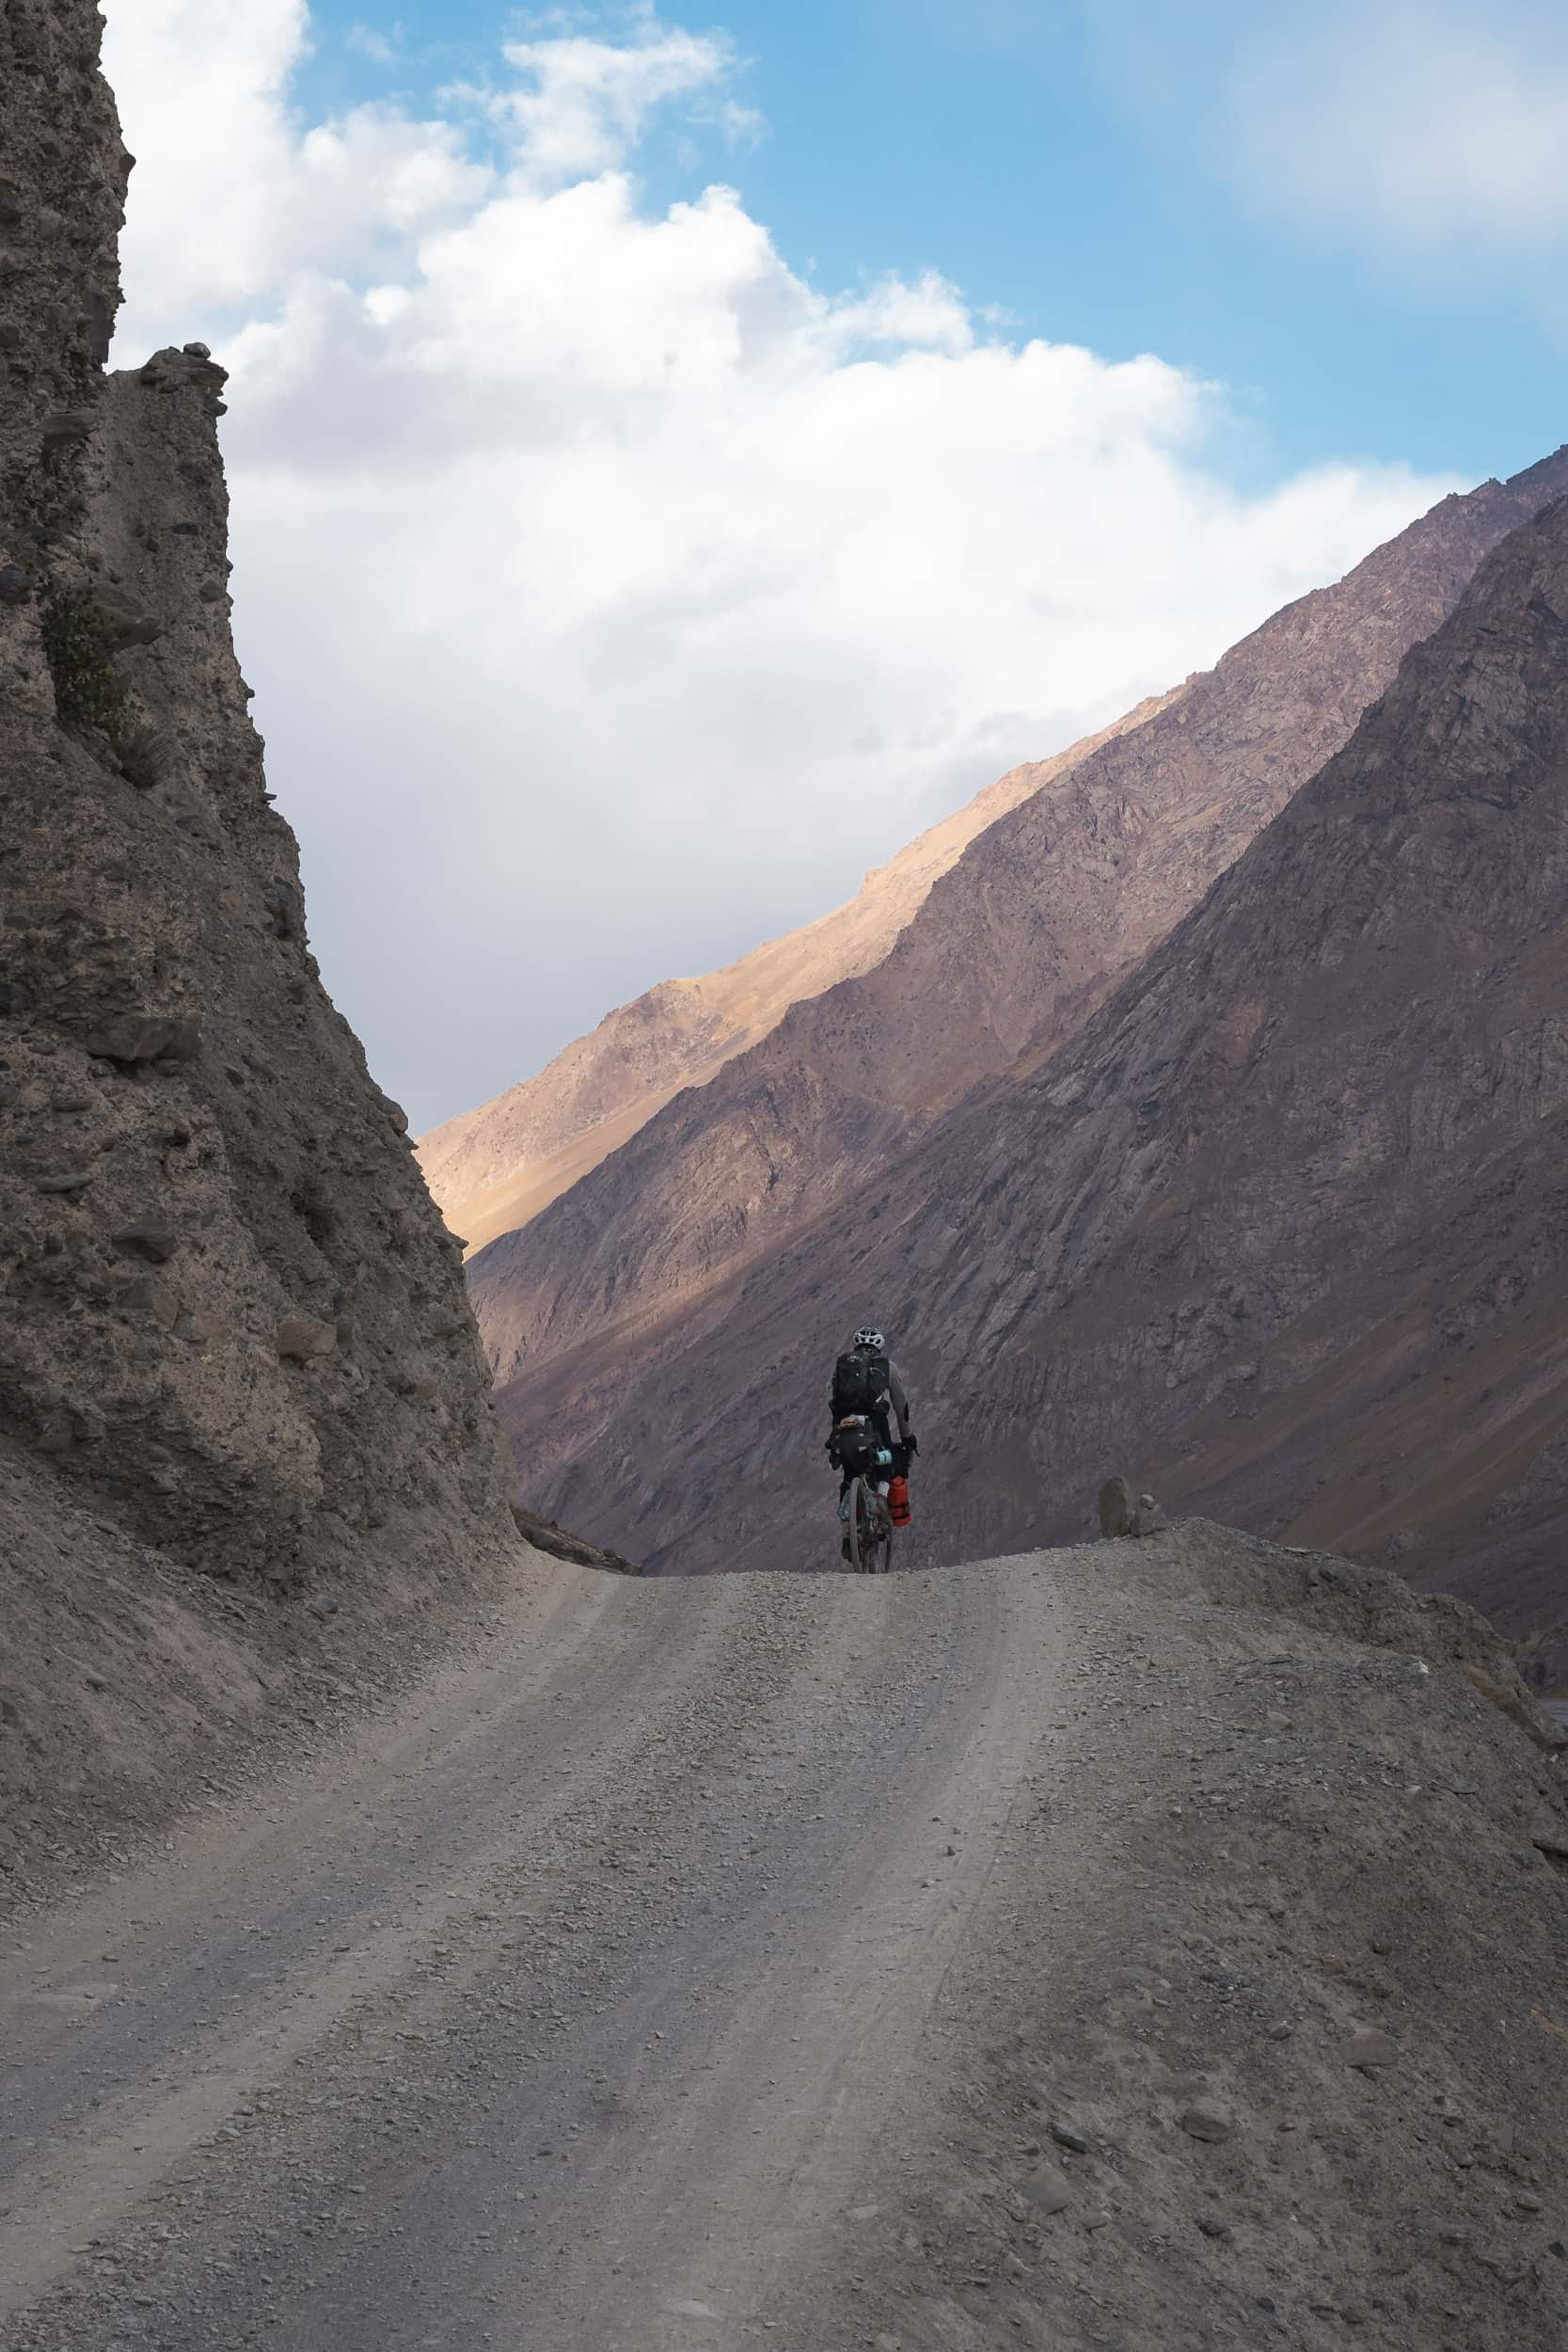 Andrew bikepacking the Bartang Valley